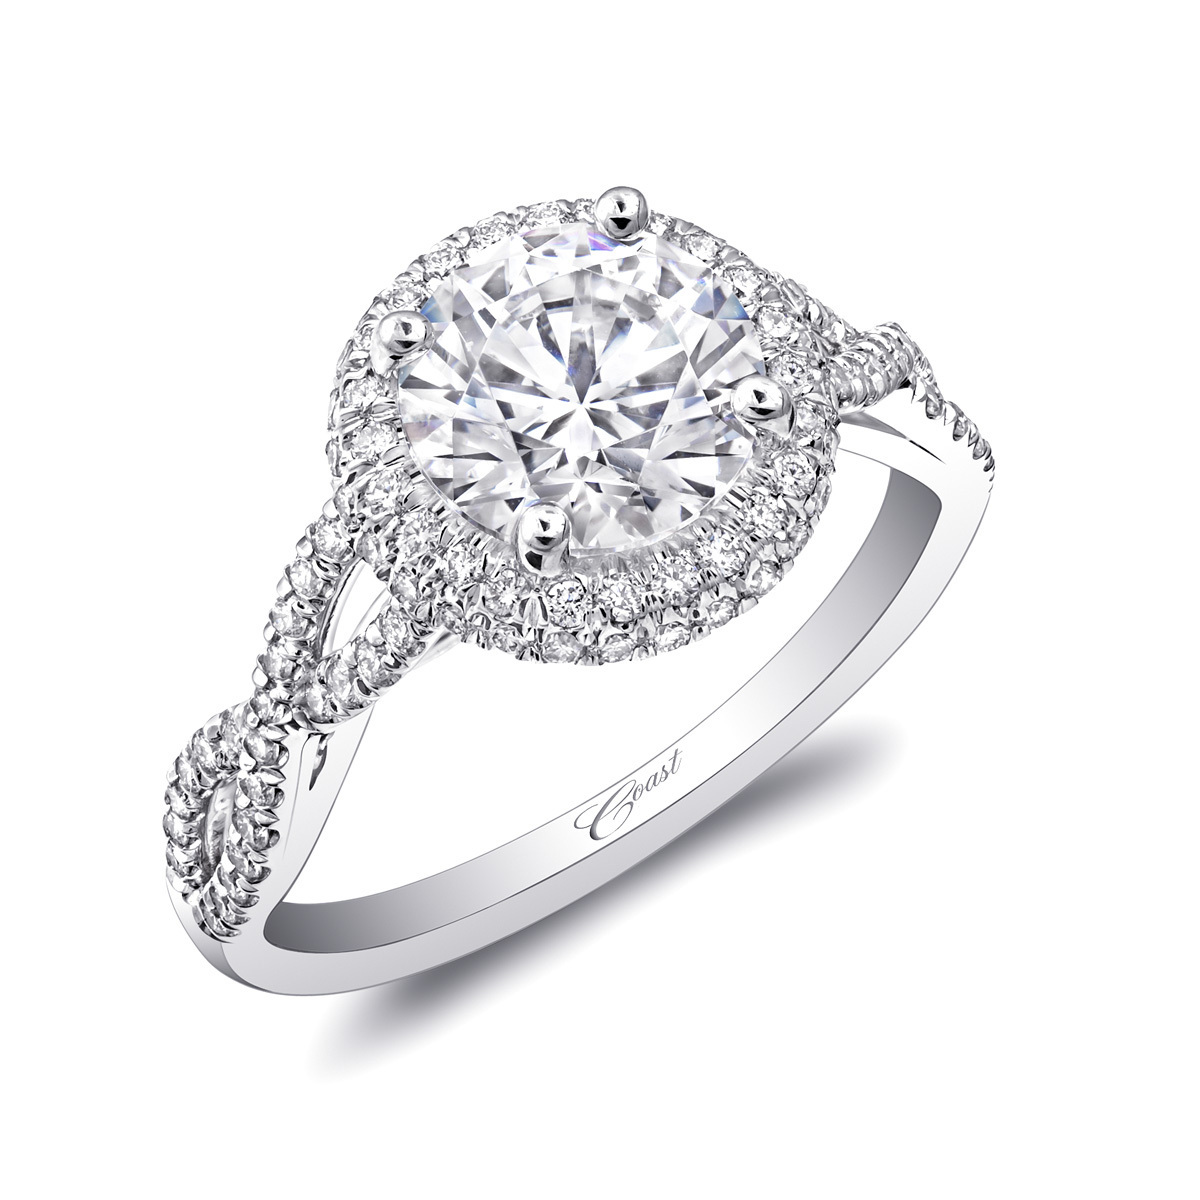 Charisma Engagement Ring - Diamond Halo & Braided Shank